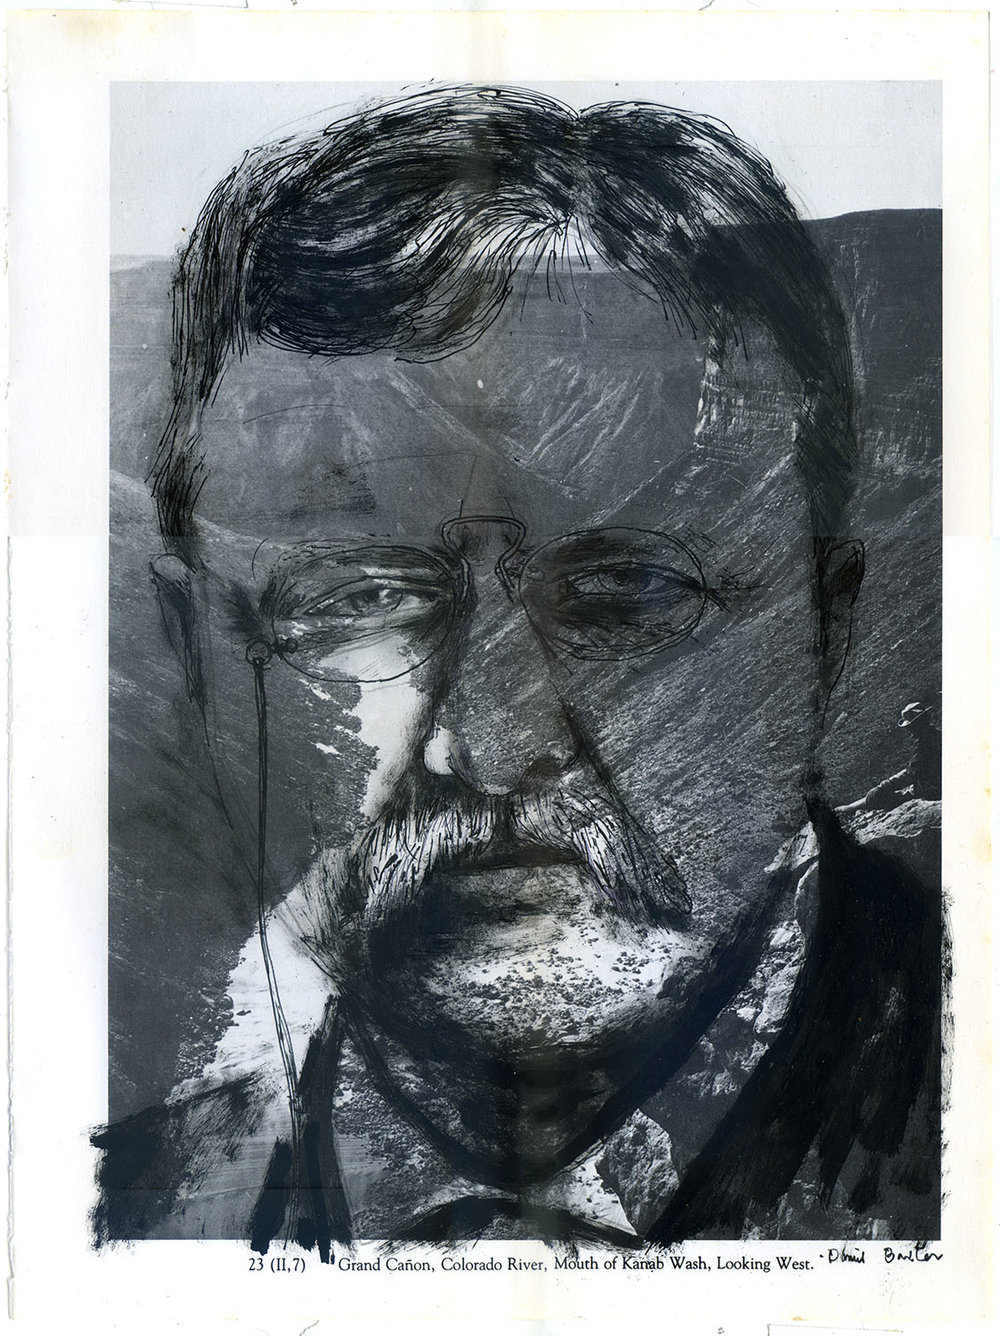 President Theodore Roosevelt, who was pivotal in creating the US National Park system